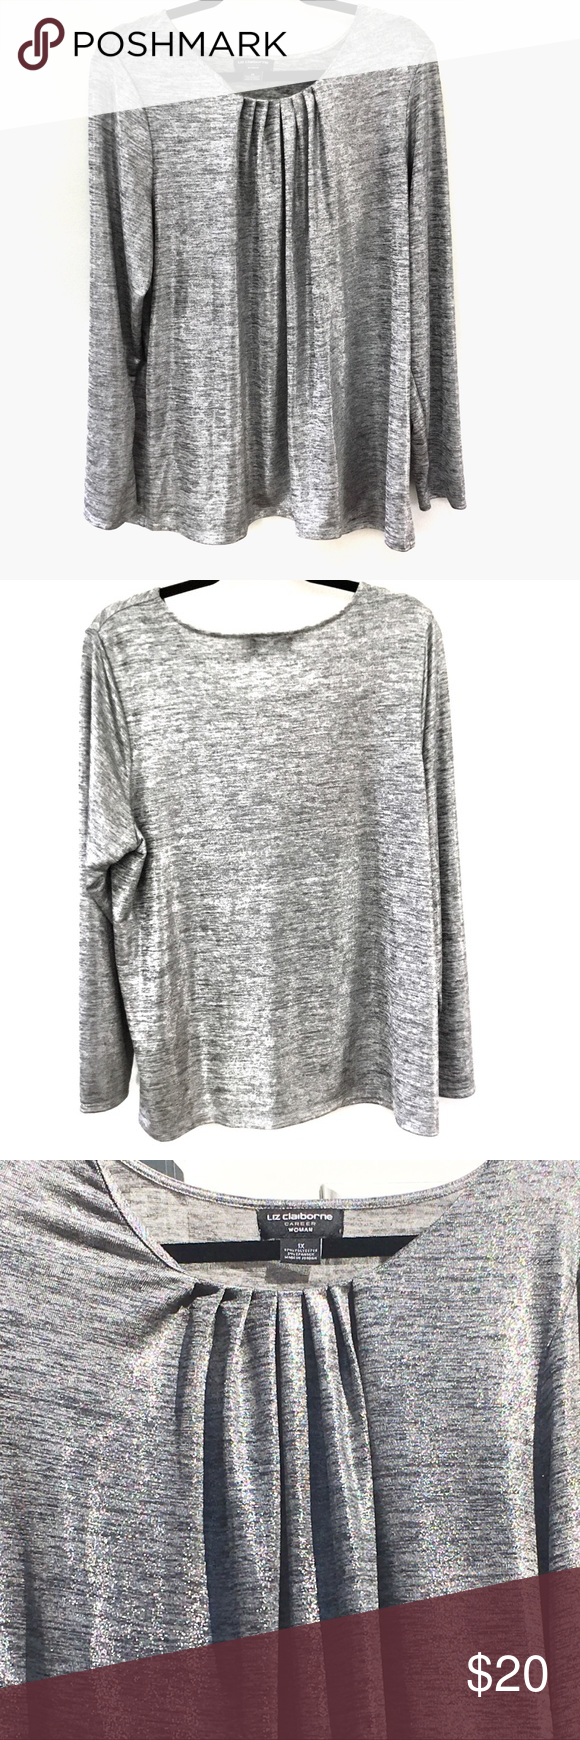 Sparkly silver scoop neck stretch top Size XL.